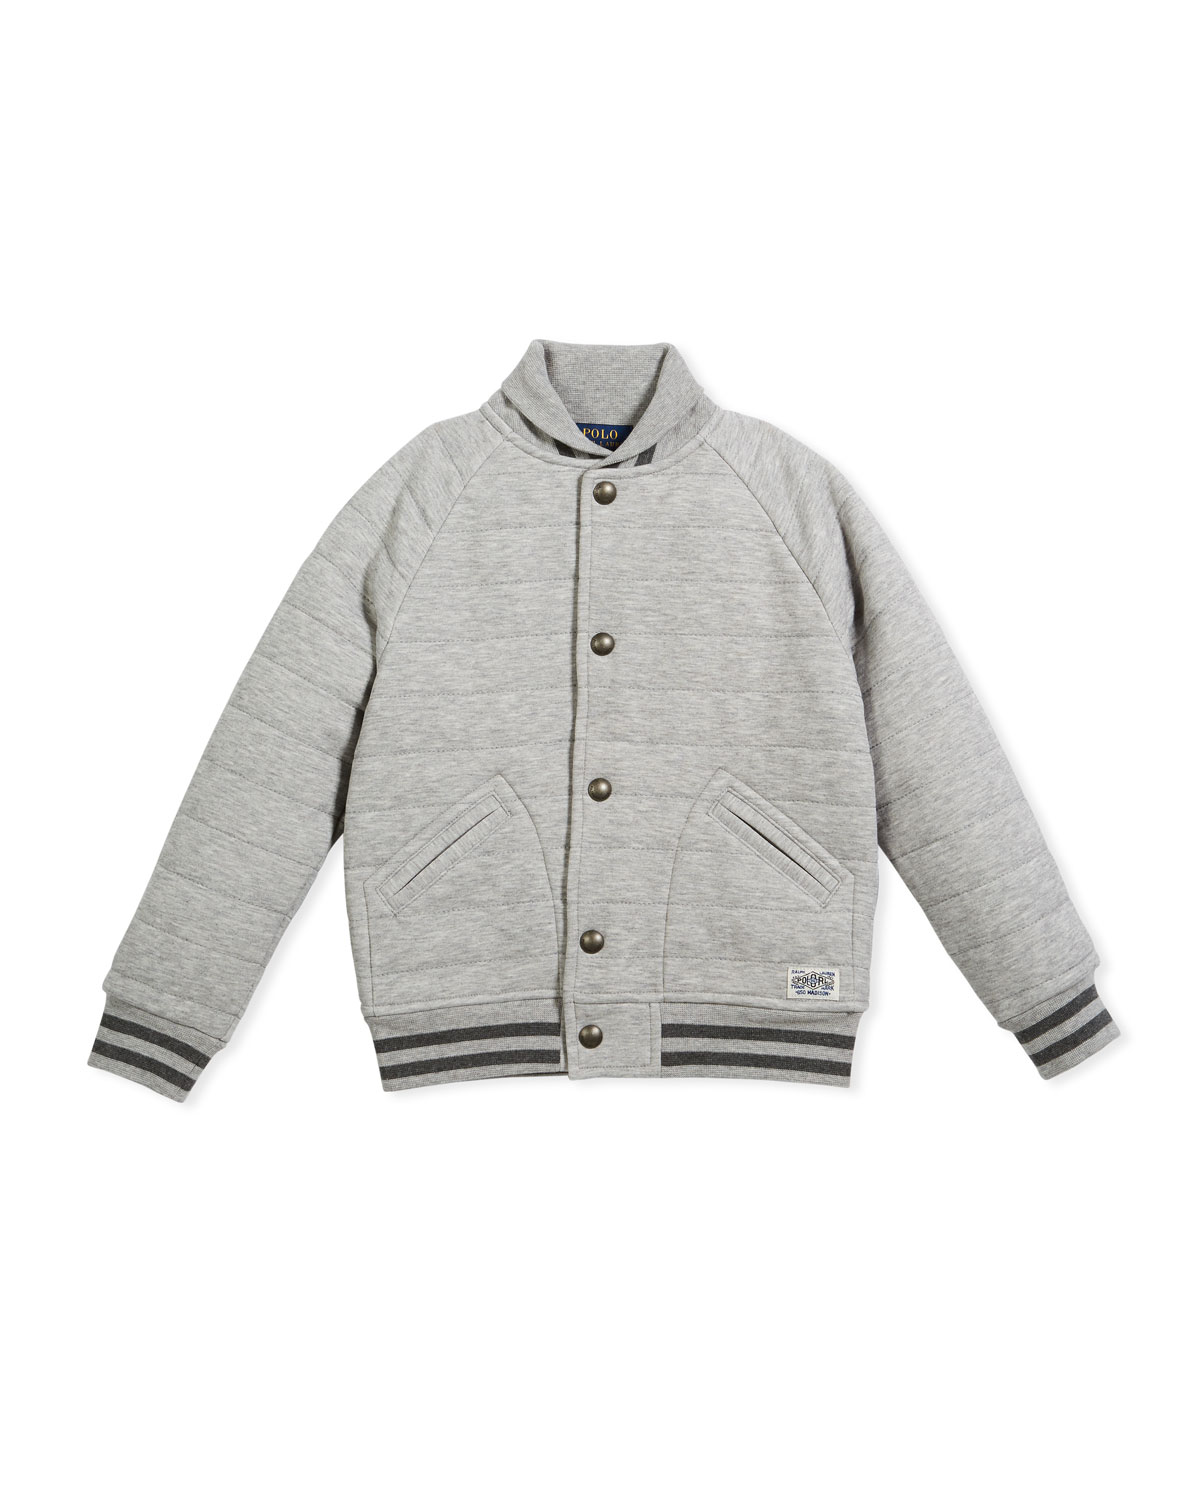 Double Knit Tech Baseball Jacket, Gray, Size 5-7